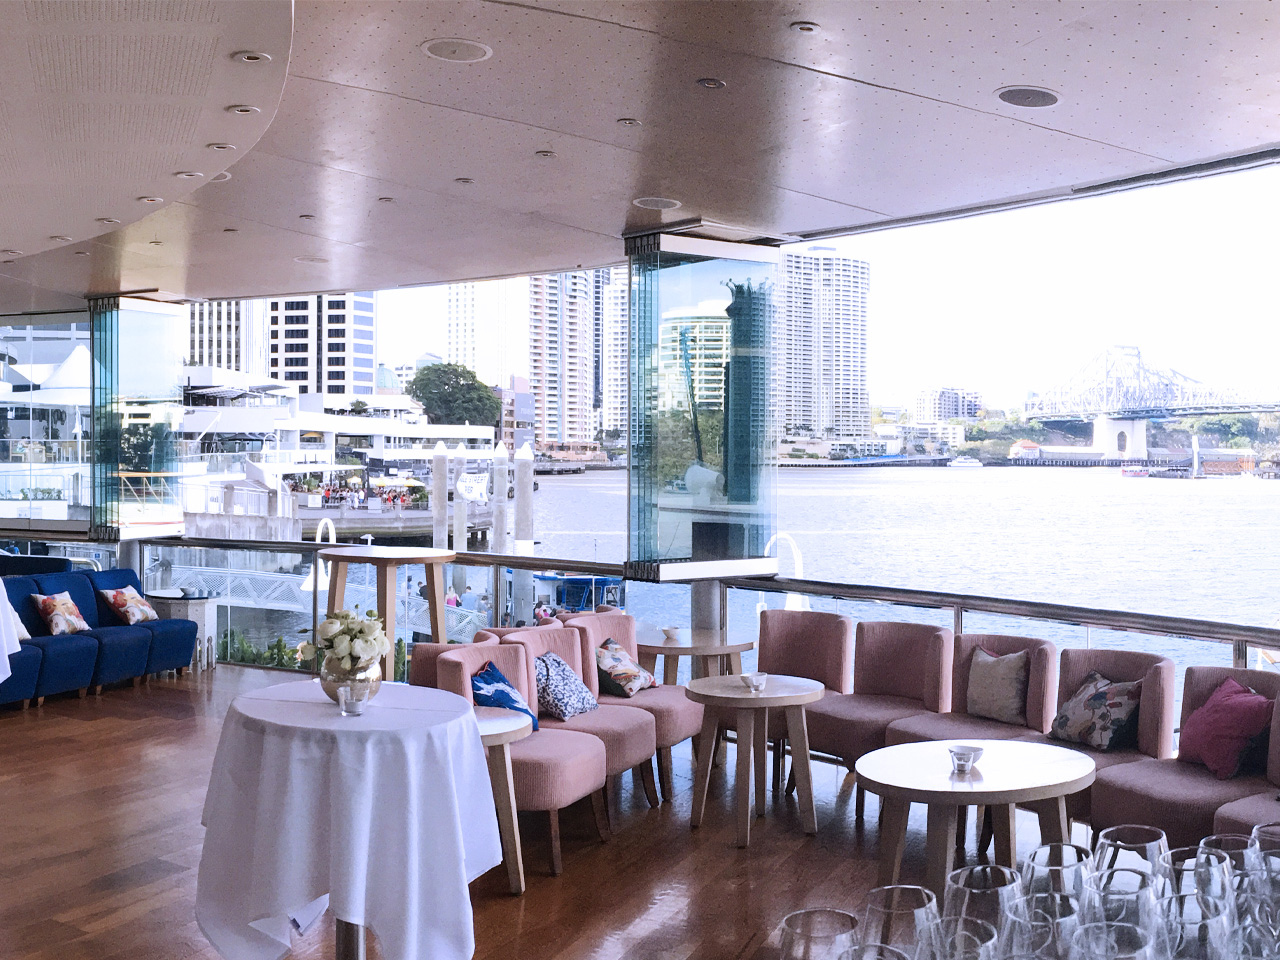 Riverside venue set up for cocktail with round tables and sofa chairs overlooking river